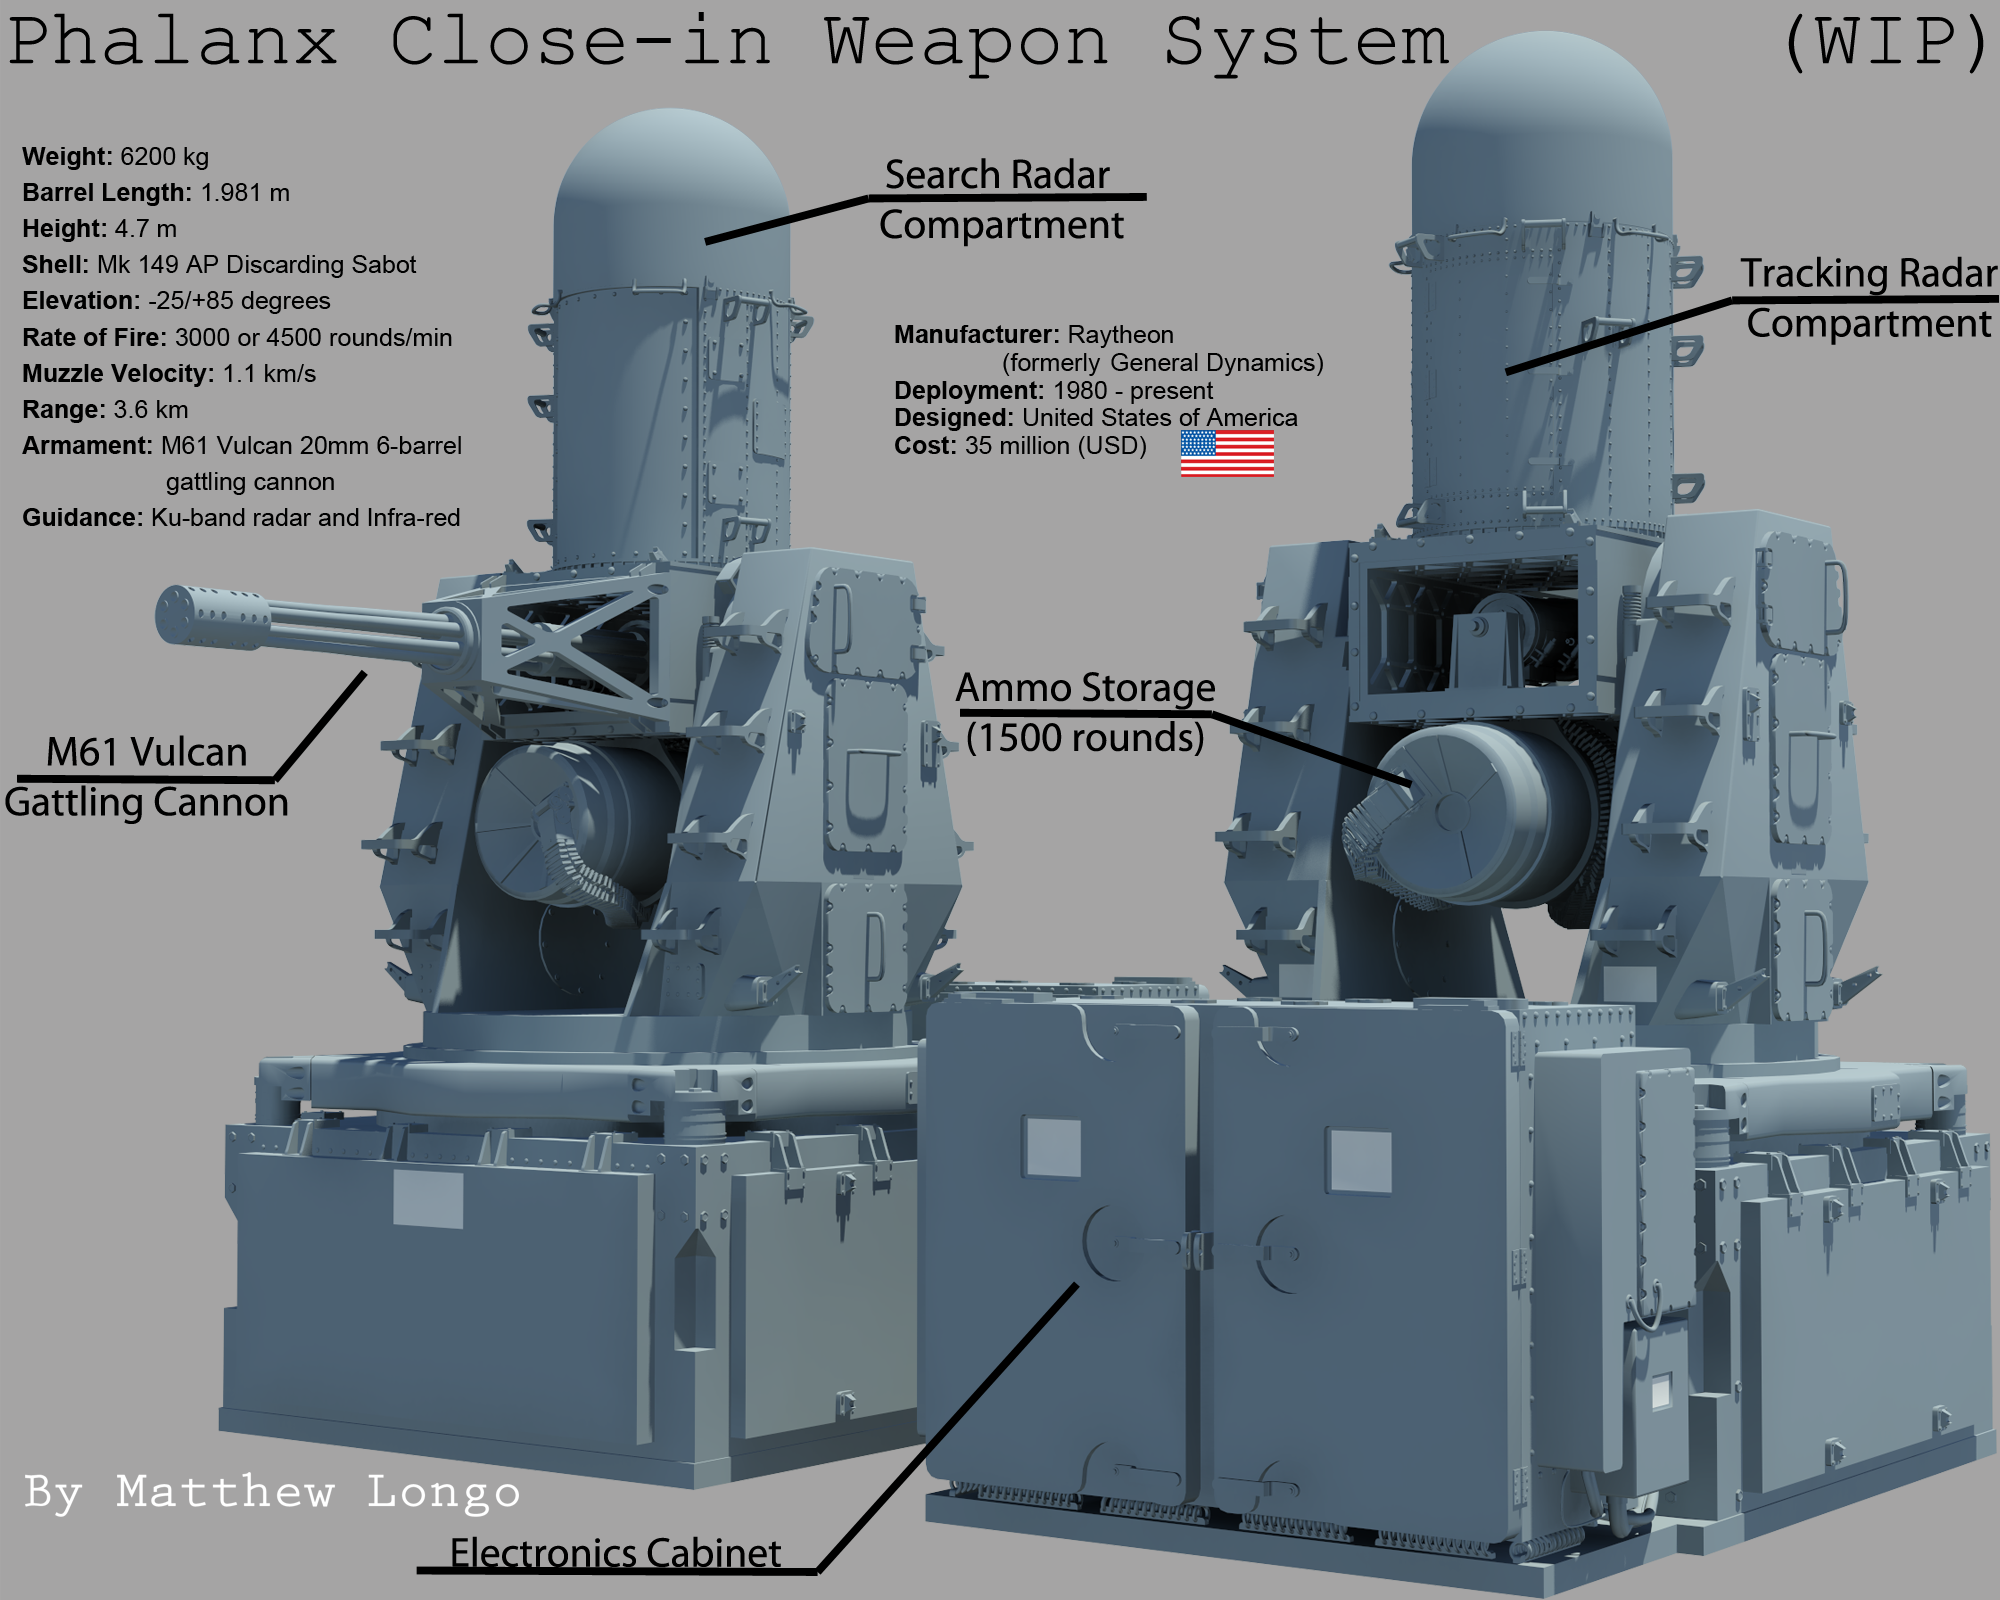 http://fc04.deviantart.net/fs70/f/2013/069/9/3/phalanx_20mm_close_in_weapon_system__ciws__by_eumenesofcardia-d5xngci.png